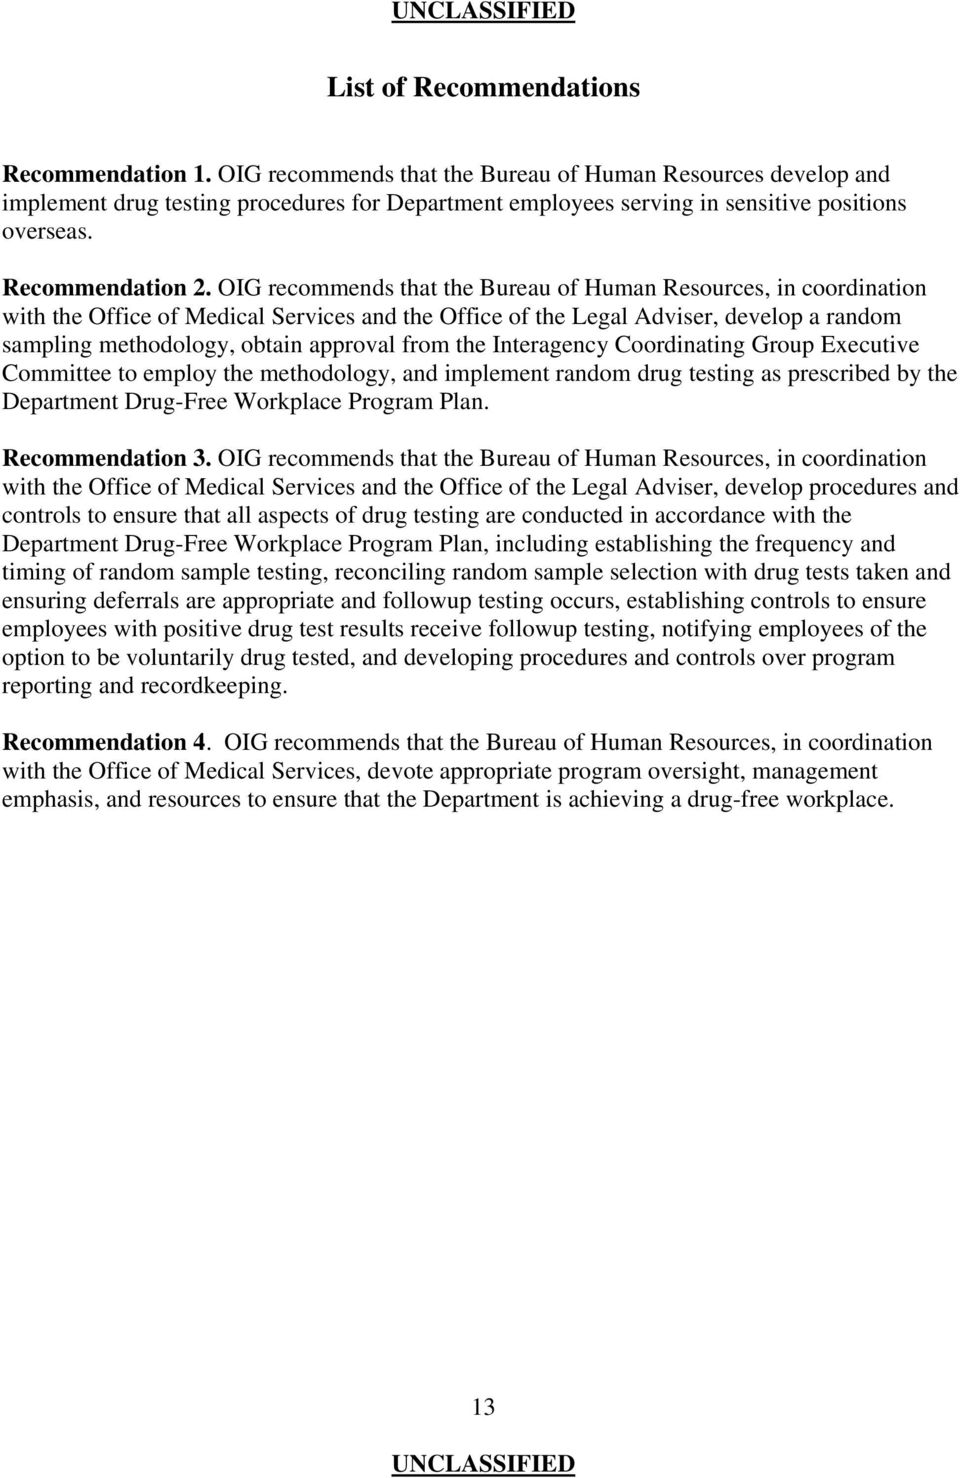 OIG recommends that the Bureau of Human Resources, in coordination with the Office of Medical Services and the Office of the Legal Adviser, develop a random sampling methodology, obtain approval from